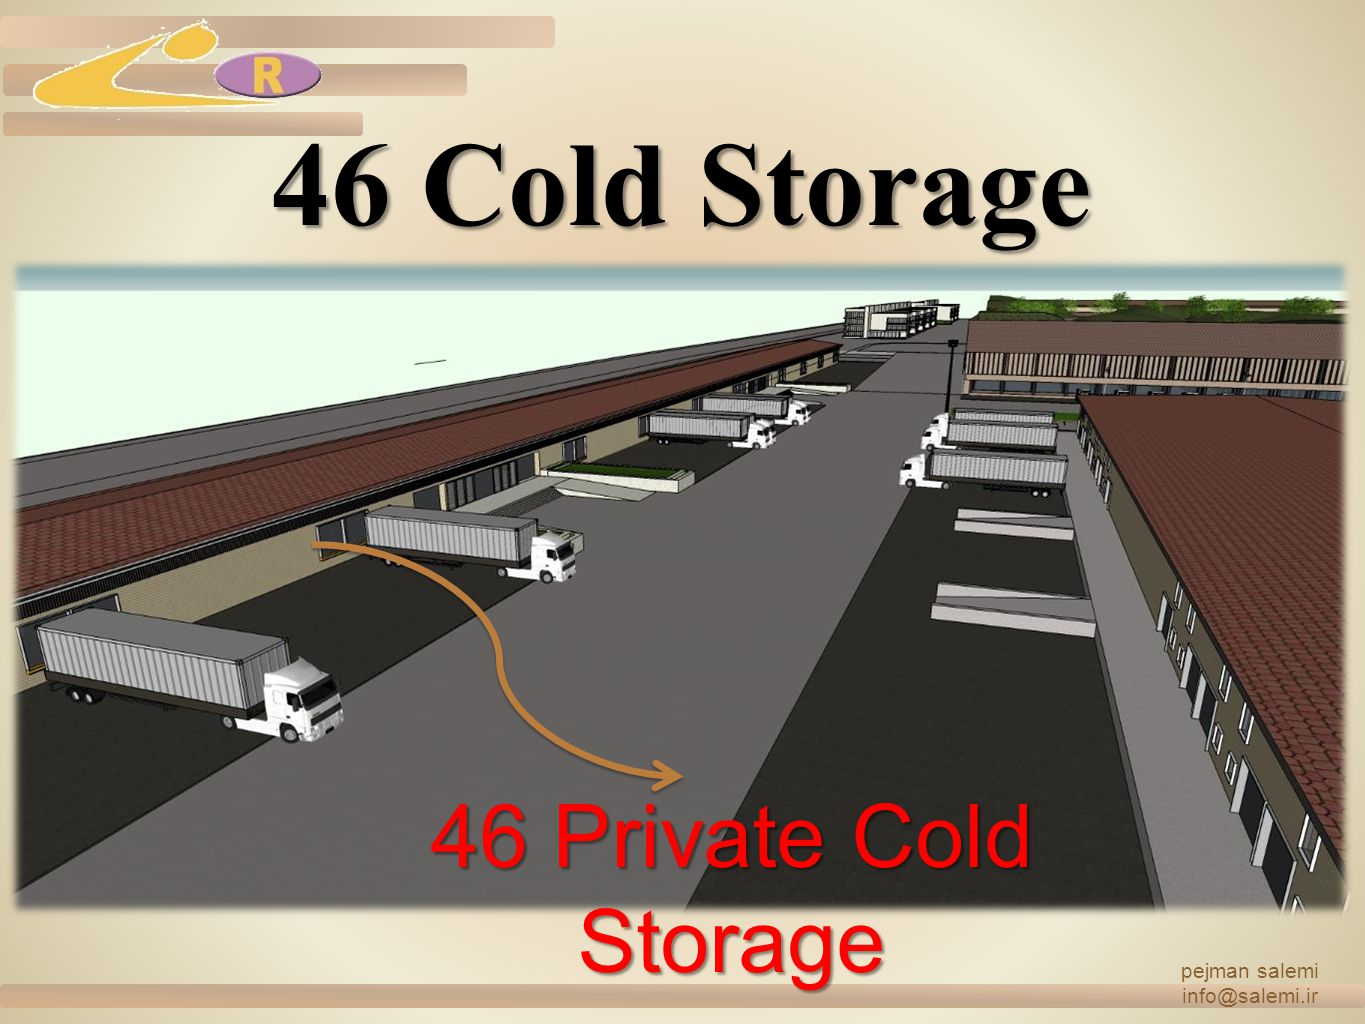 46 Cold Storage pejman salemi info@salemi.ir 46 Private Cold Storage